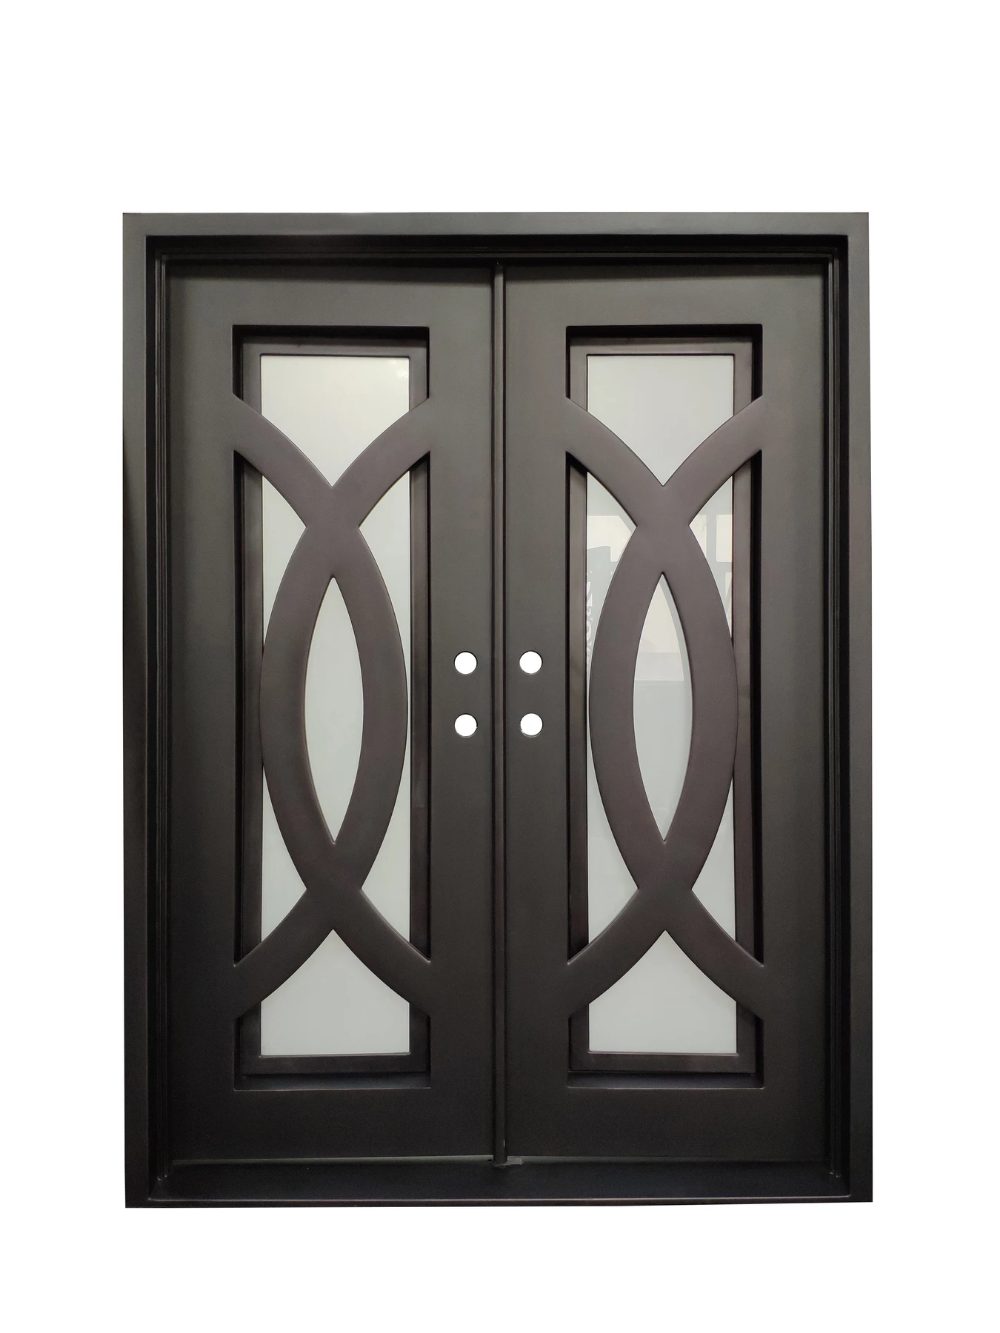 Bellevue Double Front Entry Wrought Iron Door Rain Glass 72 X 96 Iron Doors Wrought Iron Doors Iron Gate Design